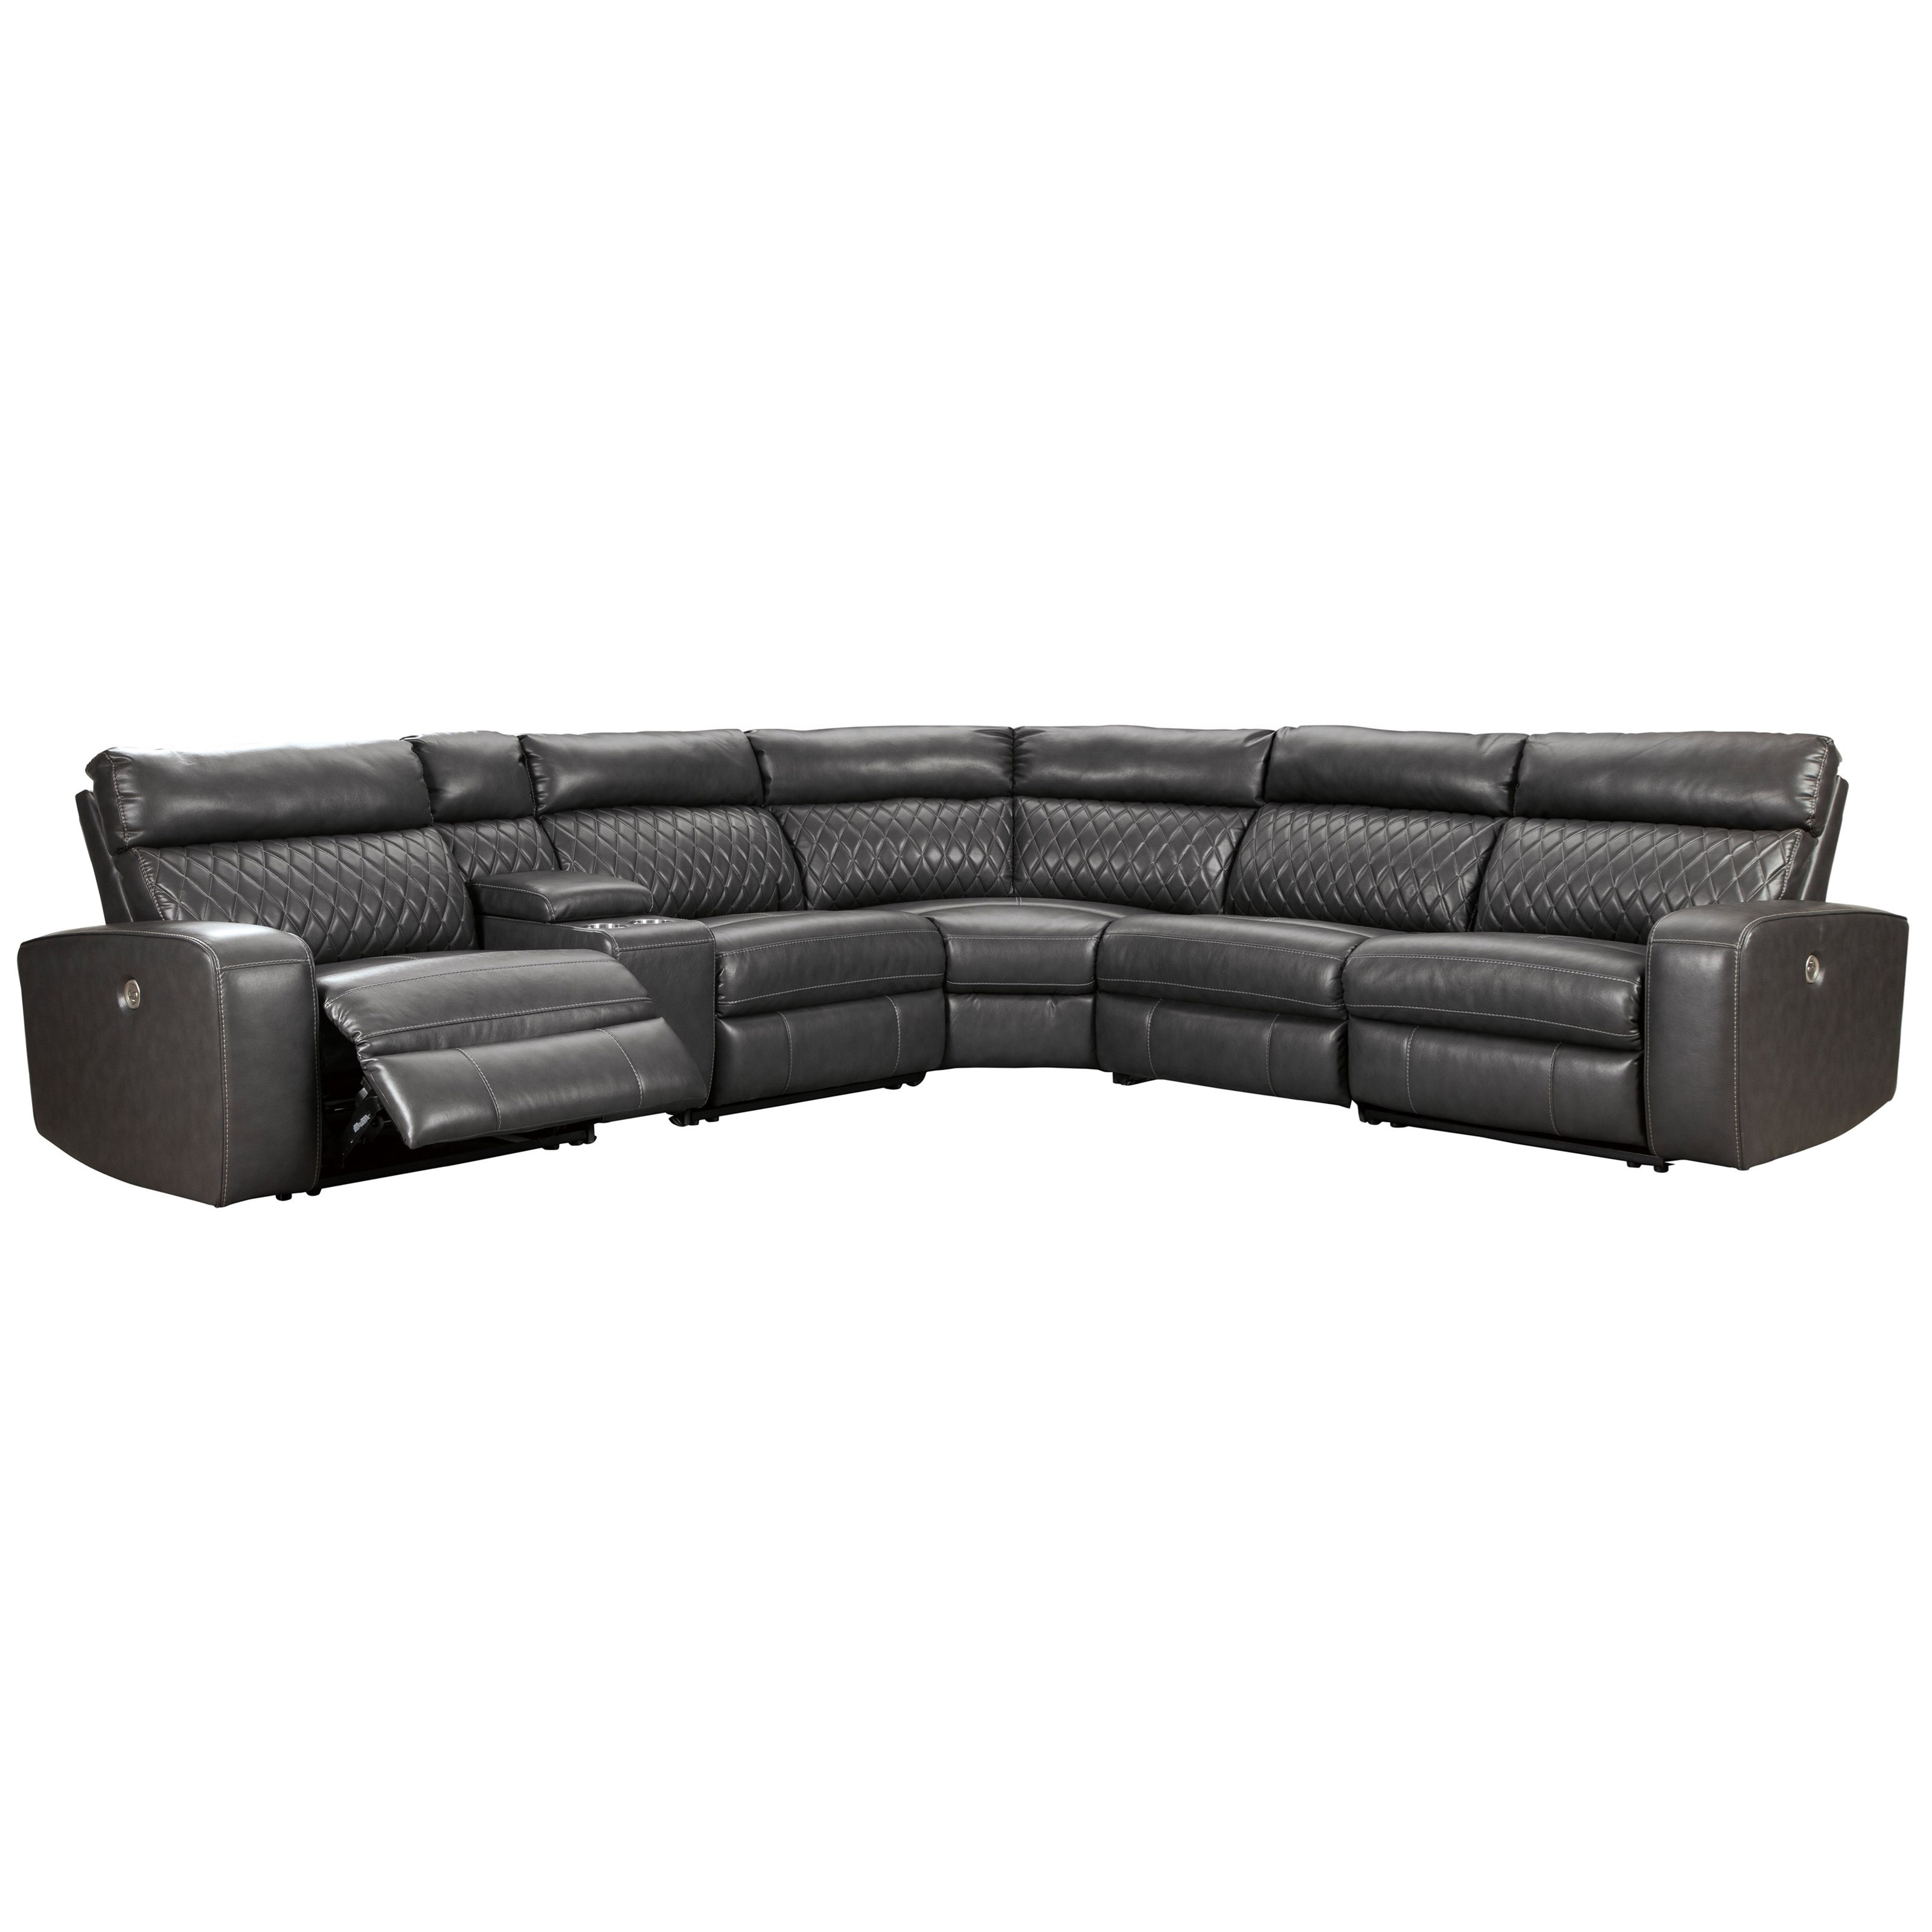 Samperstone Power Reclining Sectional Sofa by Ashley (Signature Design) at Johnny Janosik